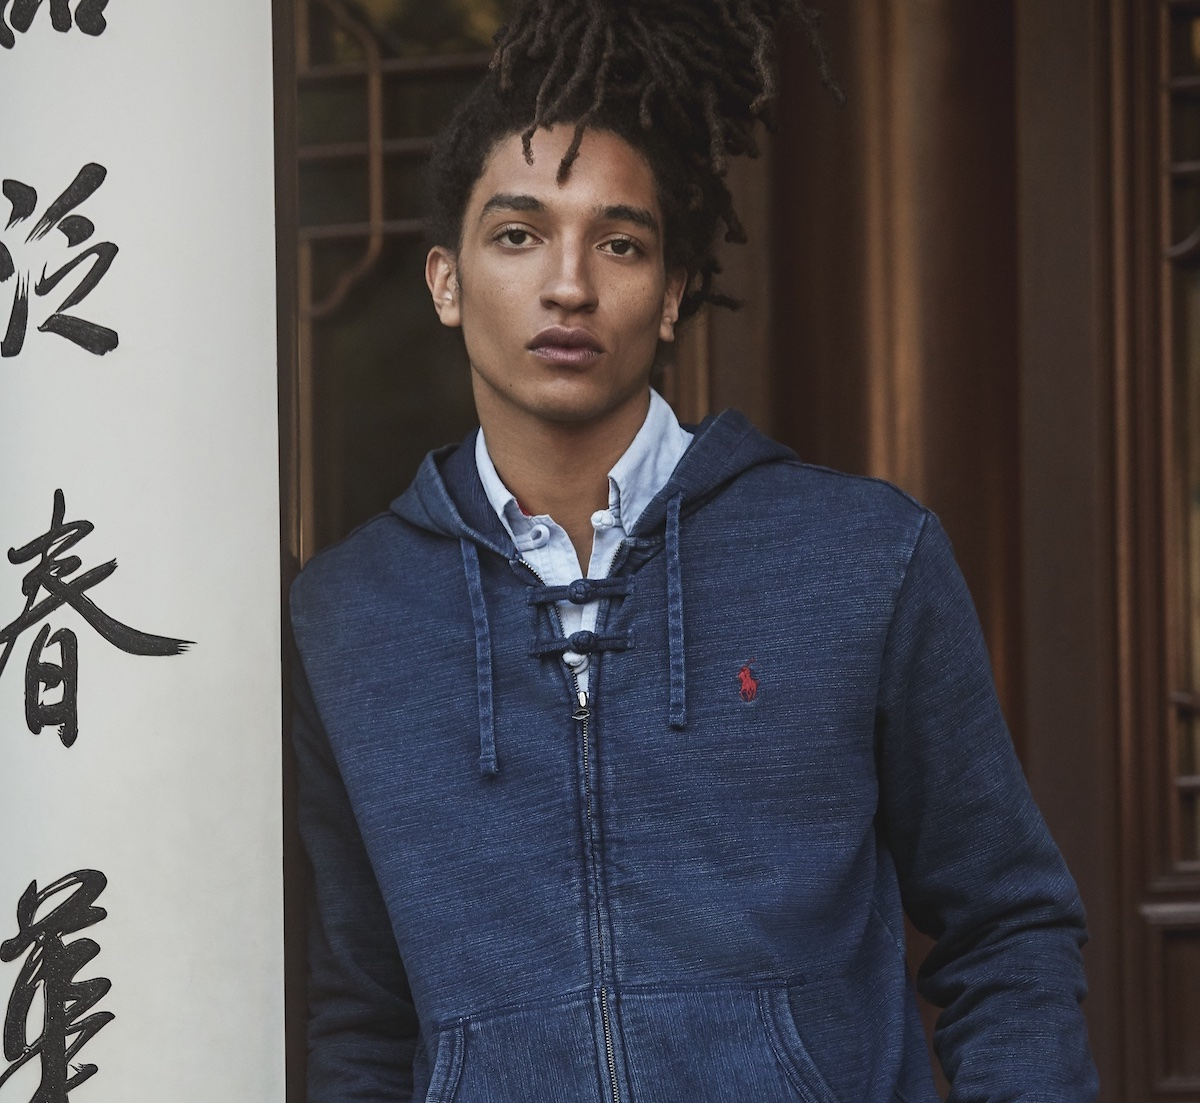 Ralph Lauren Collaborate with Hong Kong Based CLOT on Limited Edition Capsule